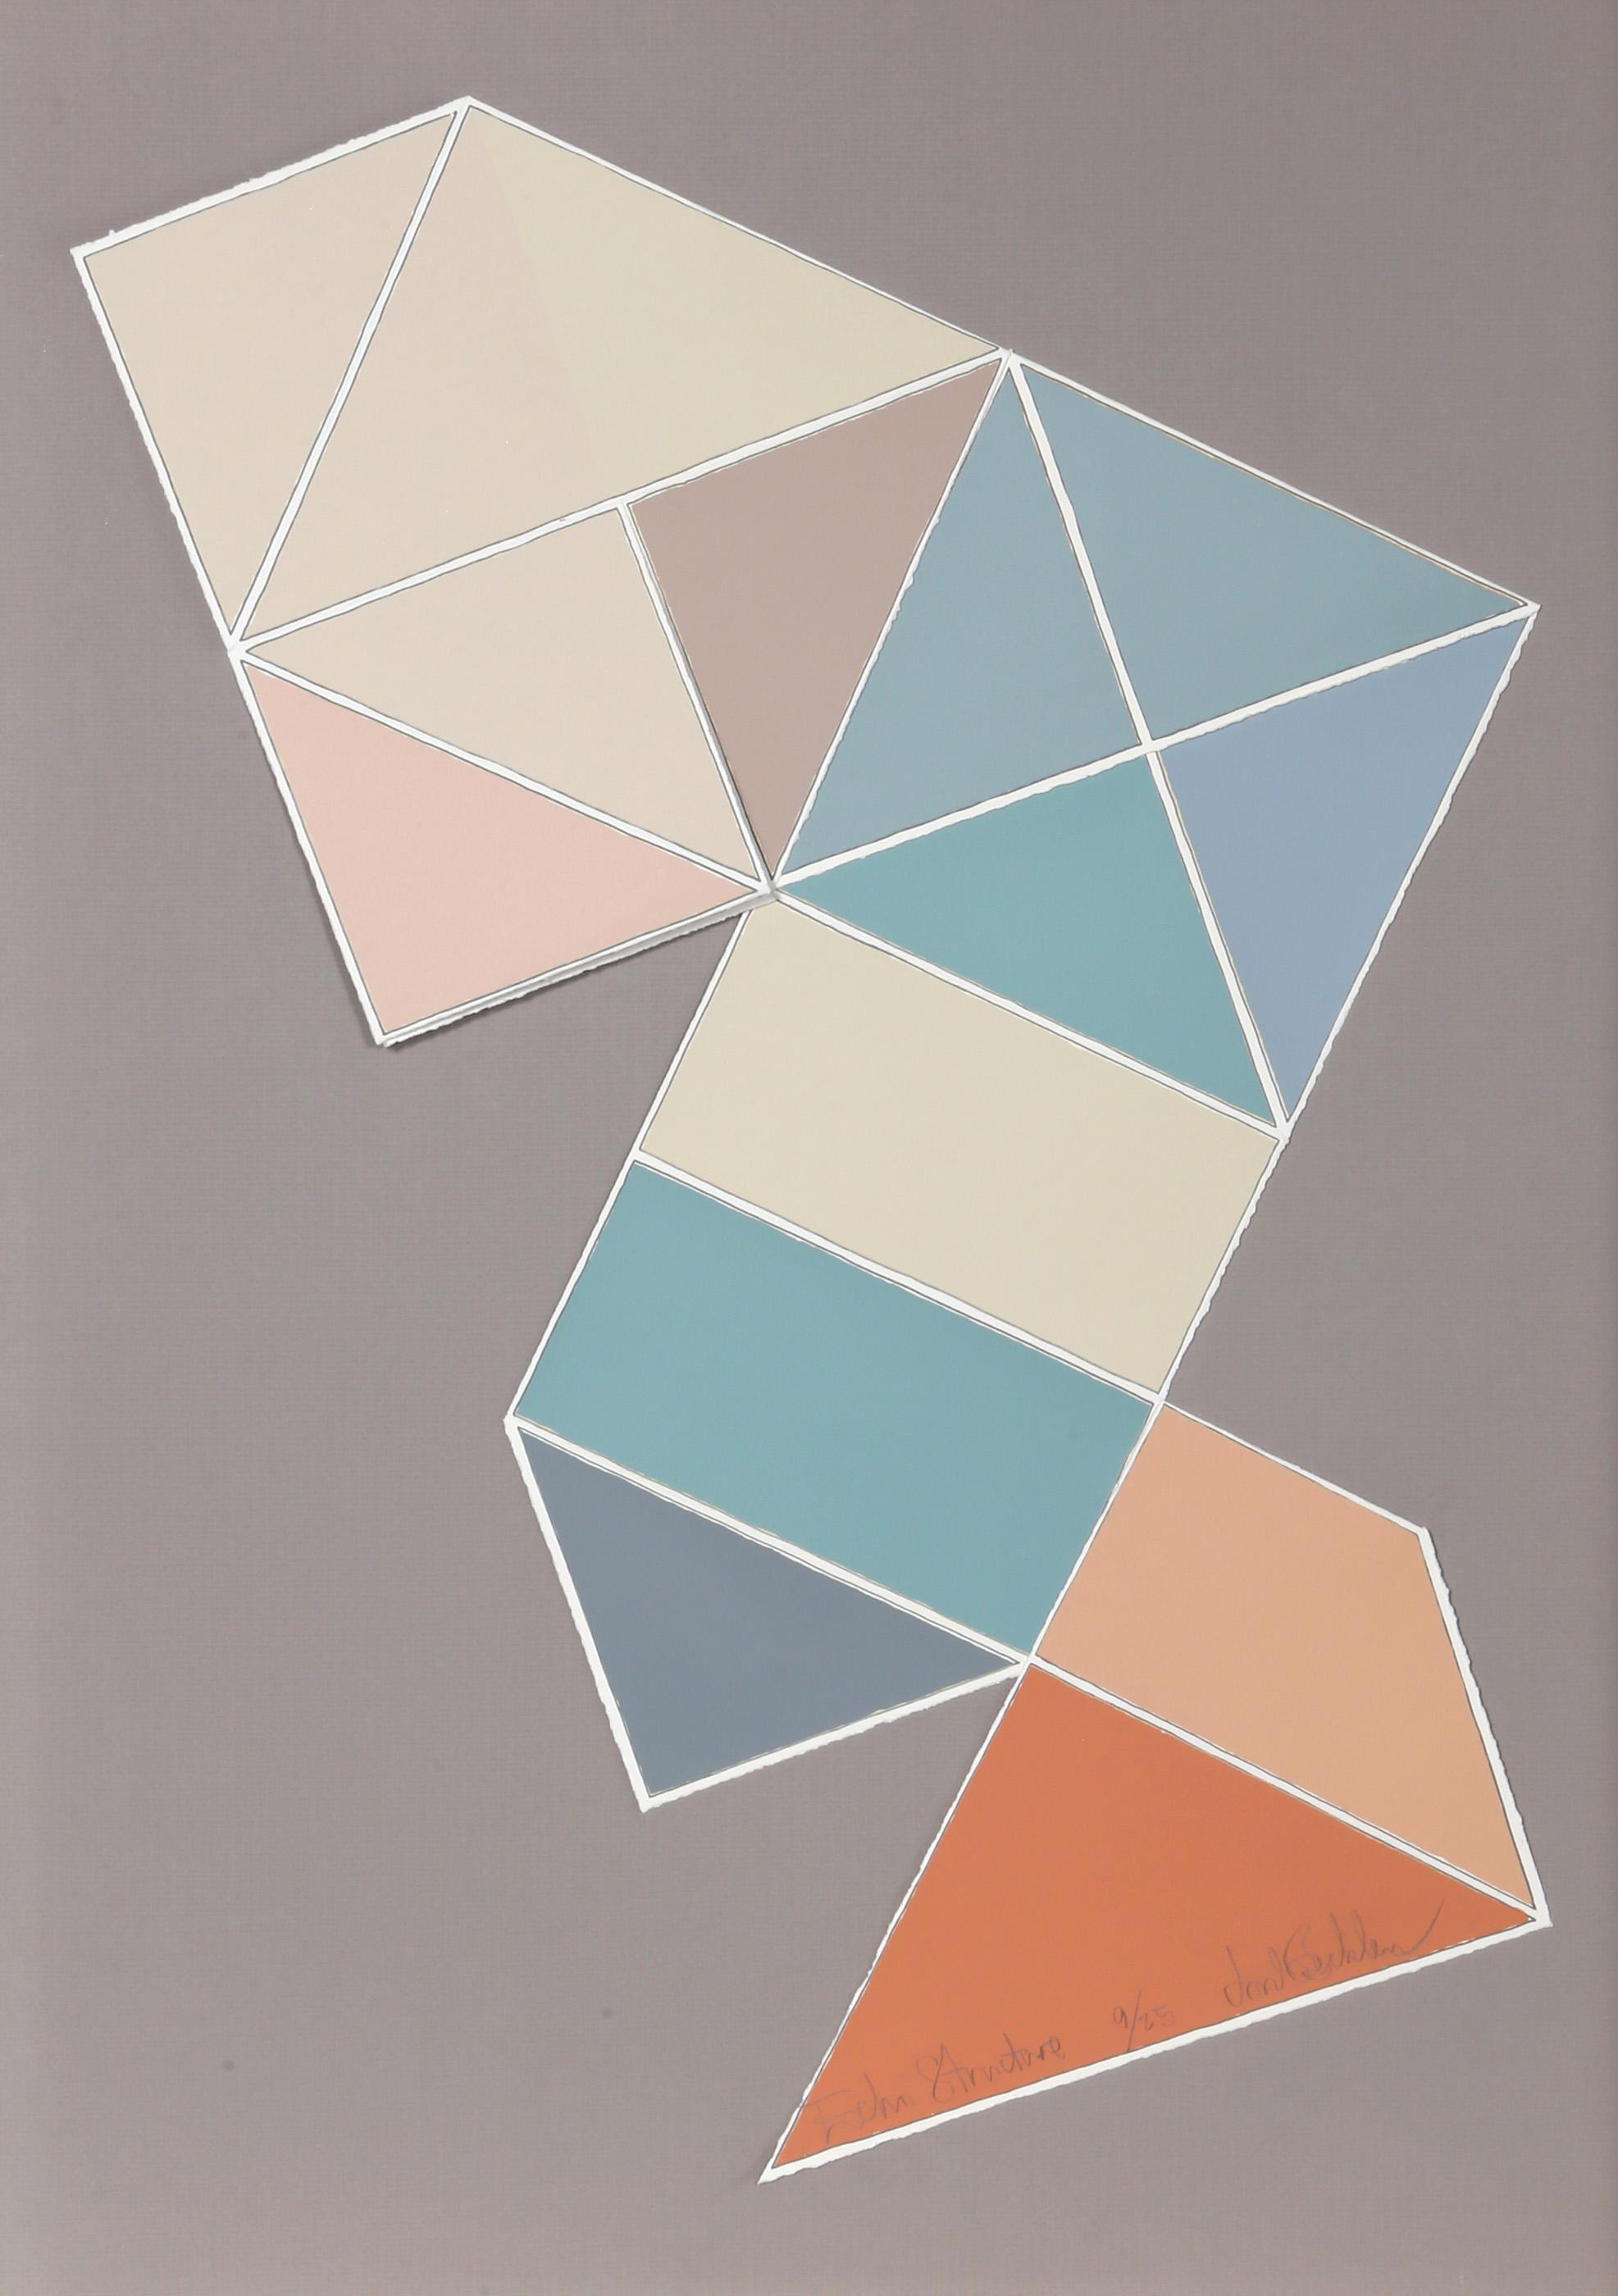 Jon Beckley, Echo Structure, Screenprint and Collage Multiple